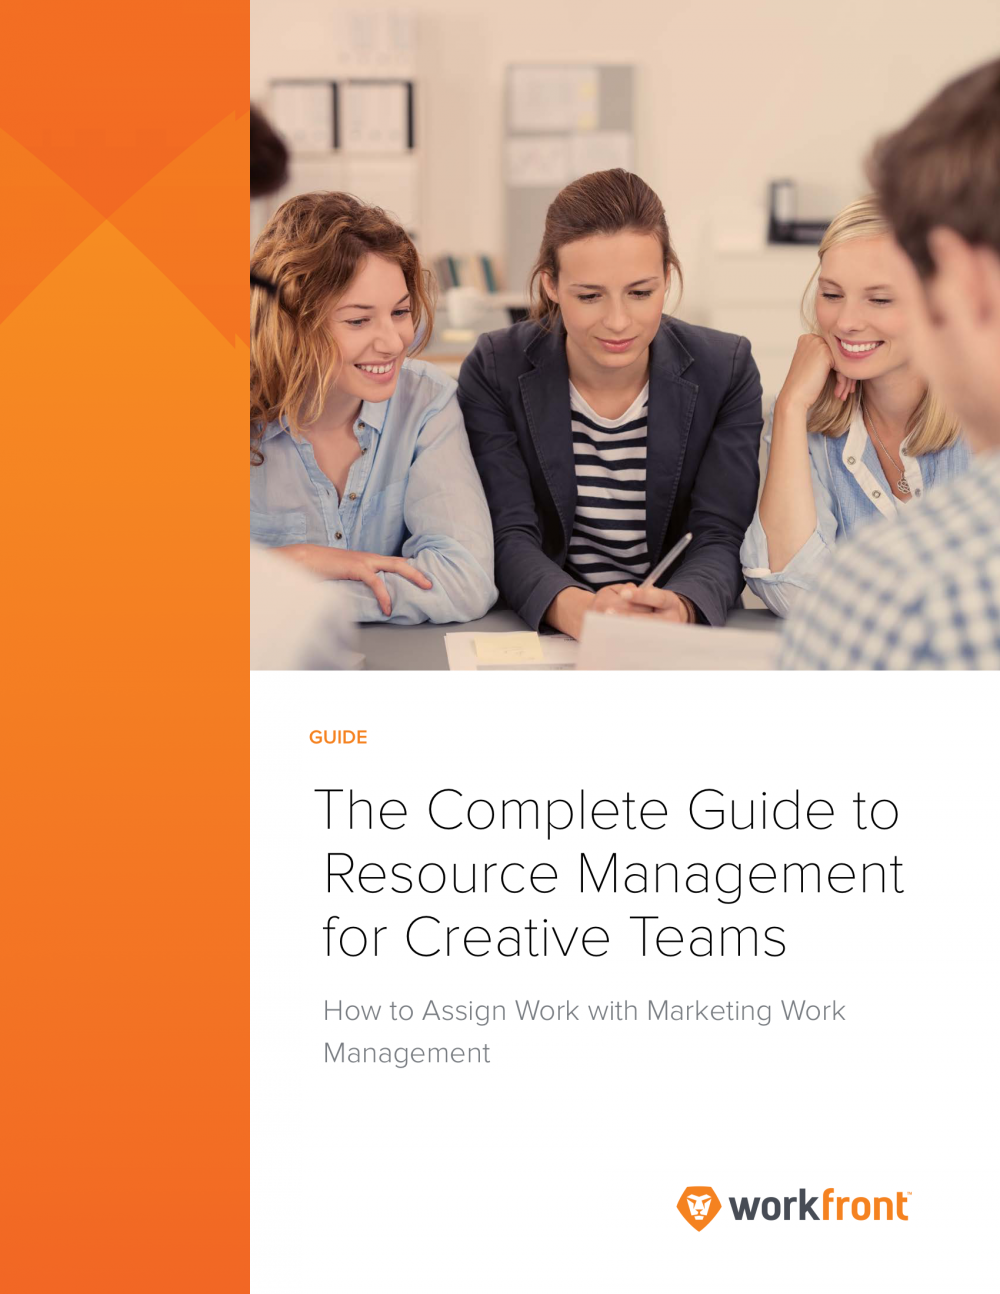 The Complete Guide to Resource Management for Creative Teams